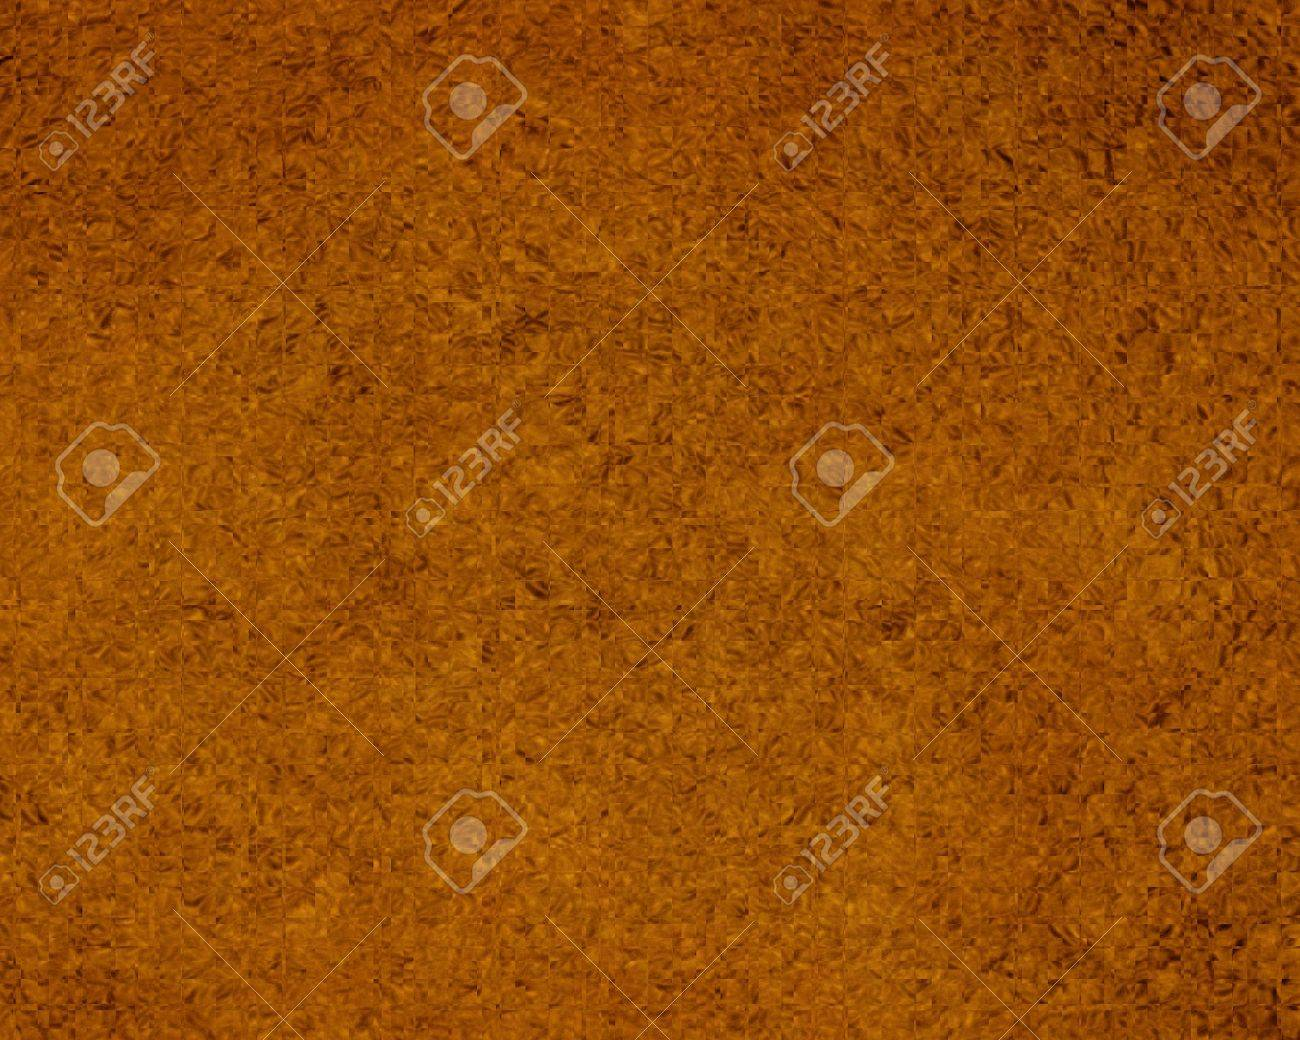 Corkboard texture with some spots on it Stock Photo - 3497265